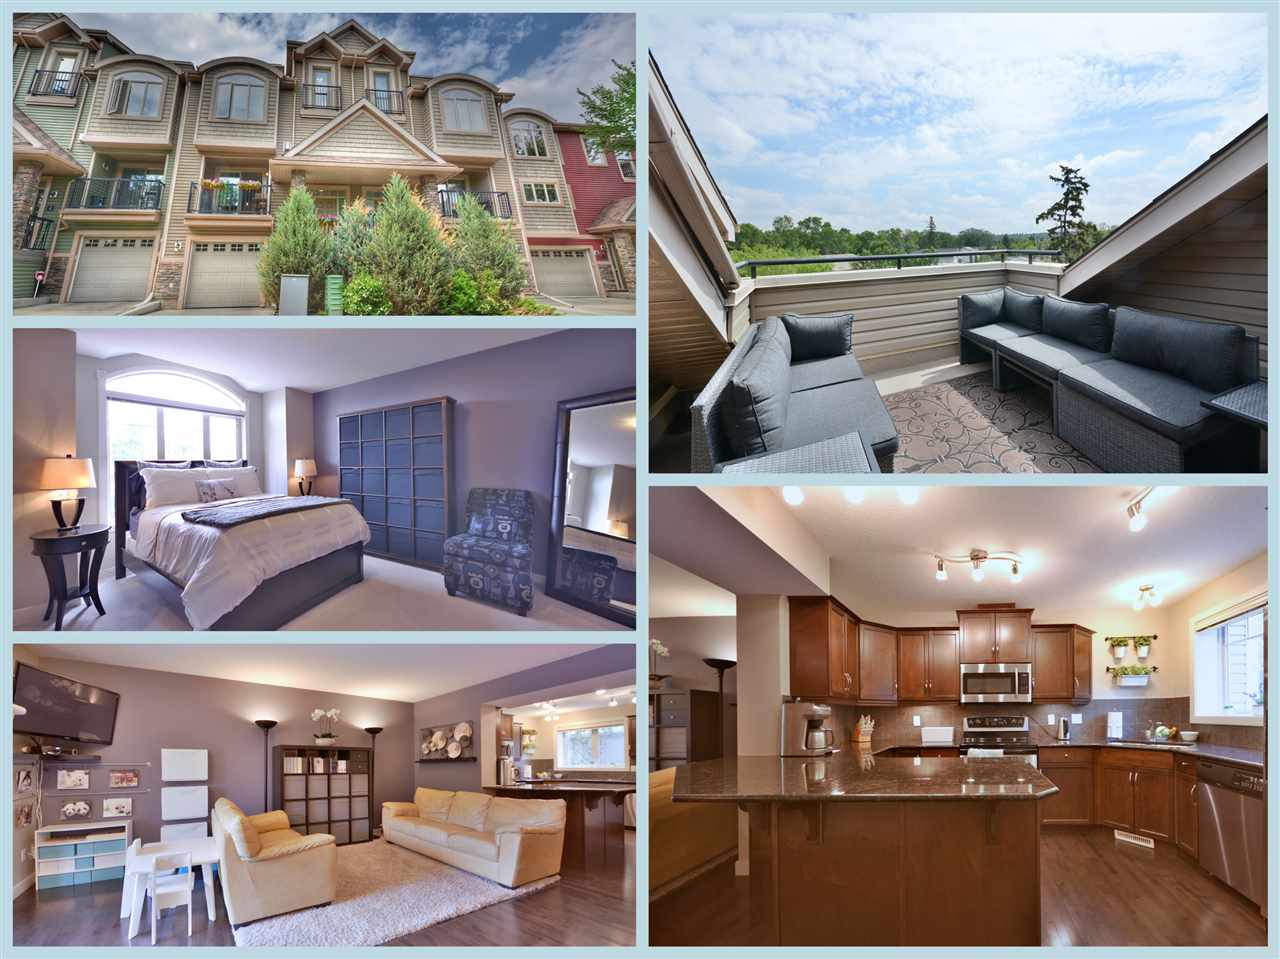 INCREDIBLE EXECUTIVE 3-STOREY TOWNHOME JUST MINUTES FROM DOWNTOWN EDMONTON WITH 4 BED, 3.5 BATH, DOUBLE ATTACHED GARAGE, AIR CONDITIONING AND ROOF TOP PATIO! Discover your favourite new neighbourhood RIVERDALE, voted one of the most desirable to live in, take a walk/bike around the numerous KM?s of city parks, RIVER VALLEY trails! RIVERDALE POINTE is a unique little community within a community with cottage inspired design, zero maintenance living and private front access/attached garages. Best feature include top to bottom upgrades, open concept living room, outdoor access on almost every level, 4 bedrooms with 3 full baths perfect for young families, 3rd floor loft with full bath perfect for guest or office and loads of storage space in the garage and basement. Everything you want in a home with the square footage you need with bonus ROOFTOP PATIO in the best possible neighbourhood and in a price you can afford! Take a look today and get ready to move right in!